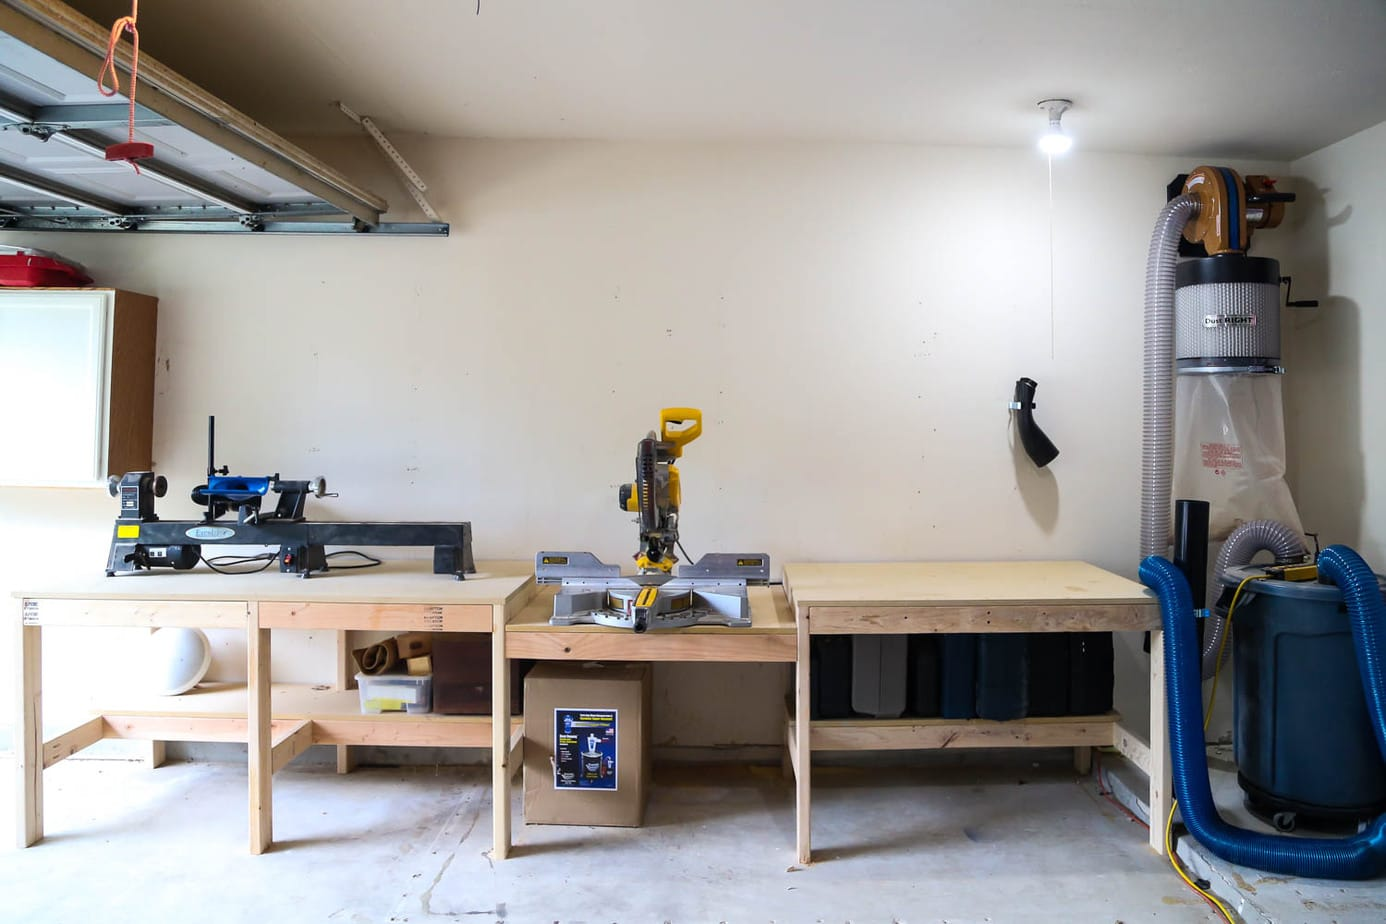 Rockler dust collection system